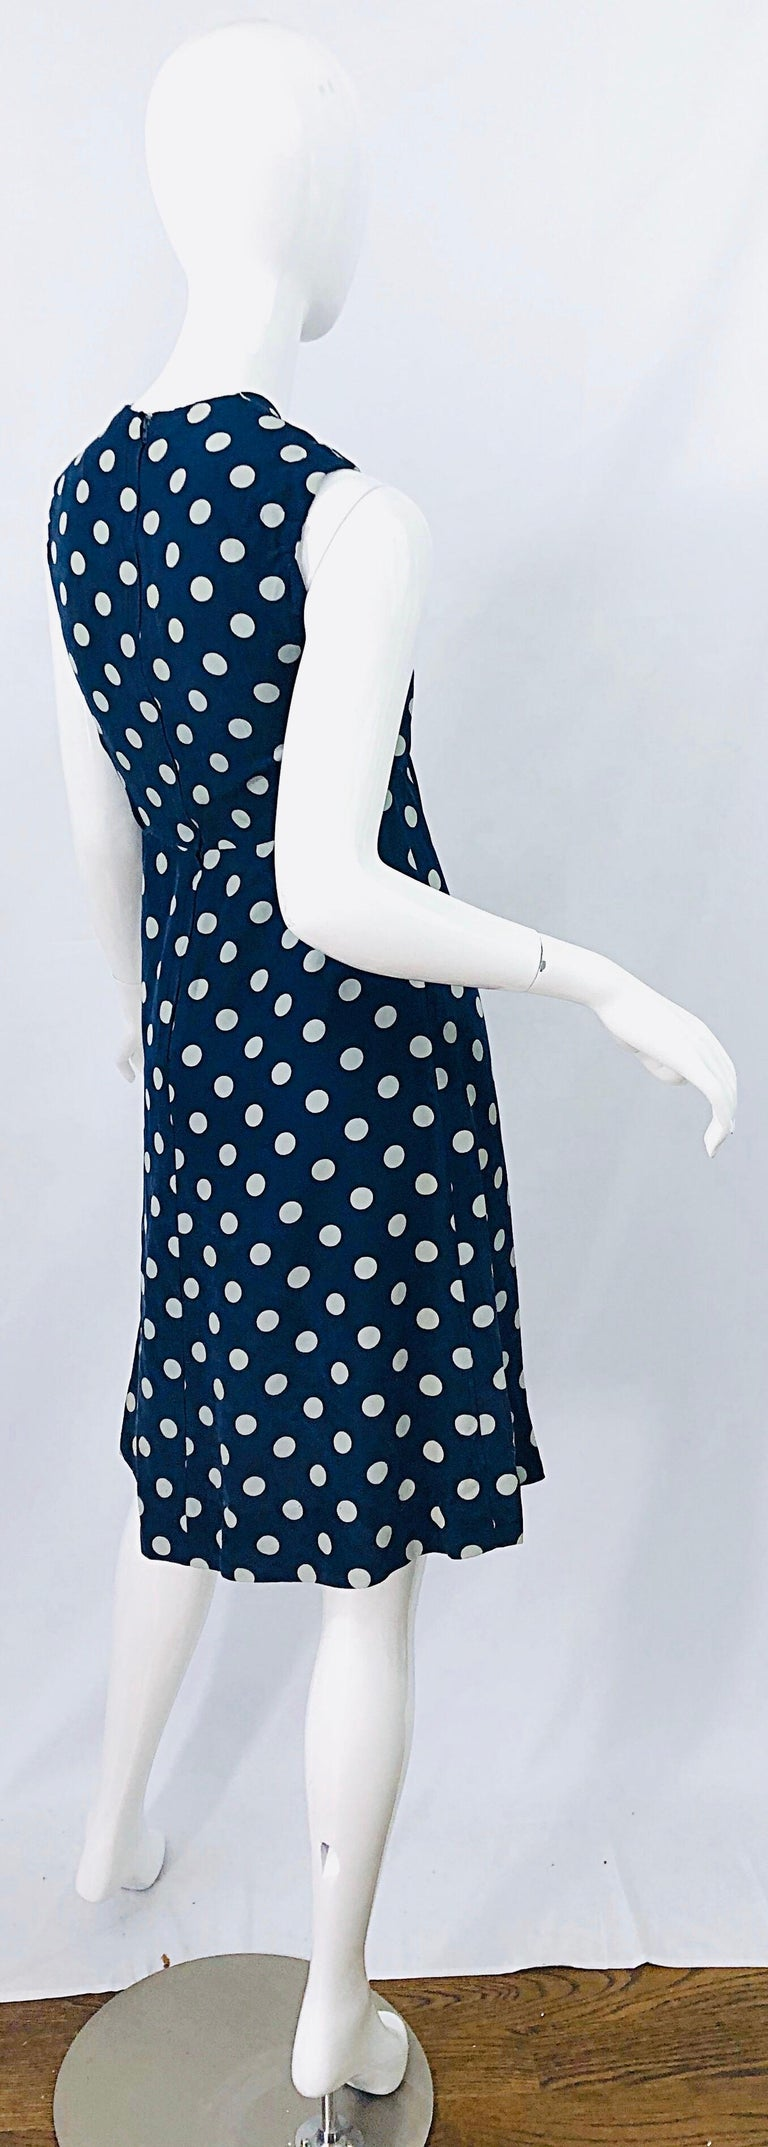 Vintage Yves Saint Laurent 1980s Navy Blue + White Polka Dot Silk 80s Dress YSL For Sale 7